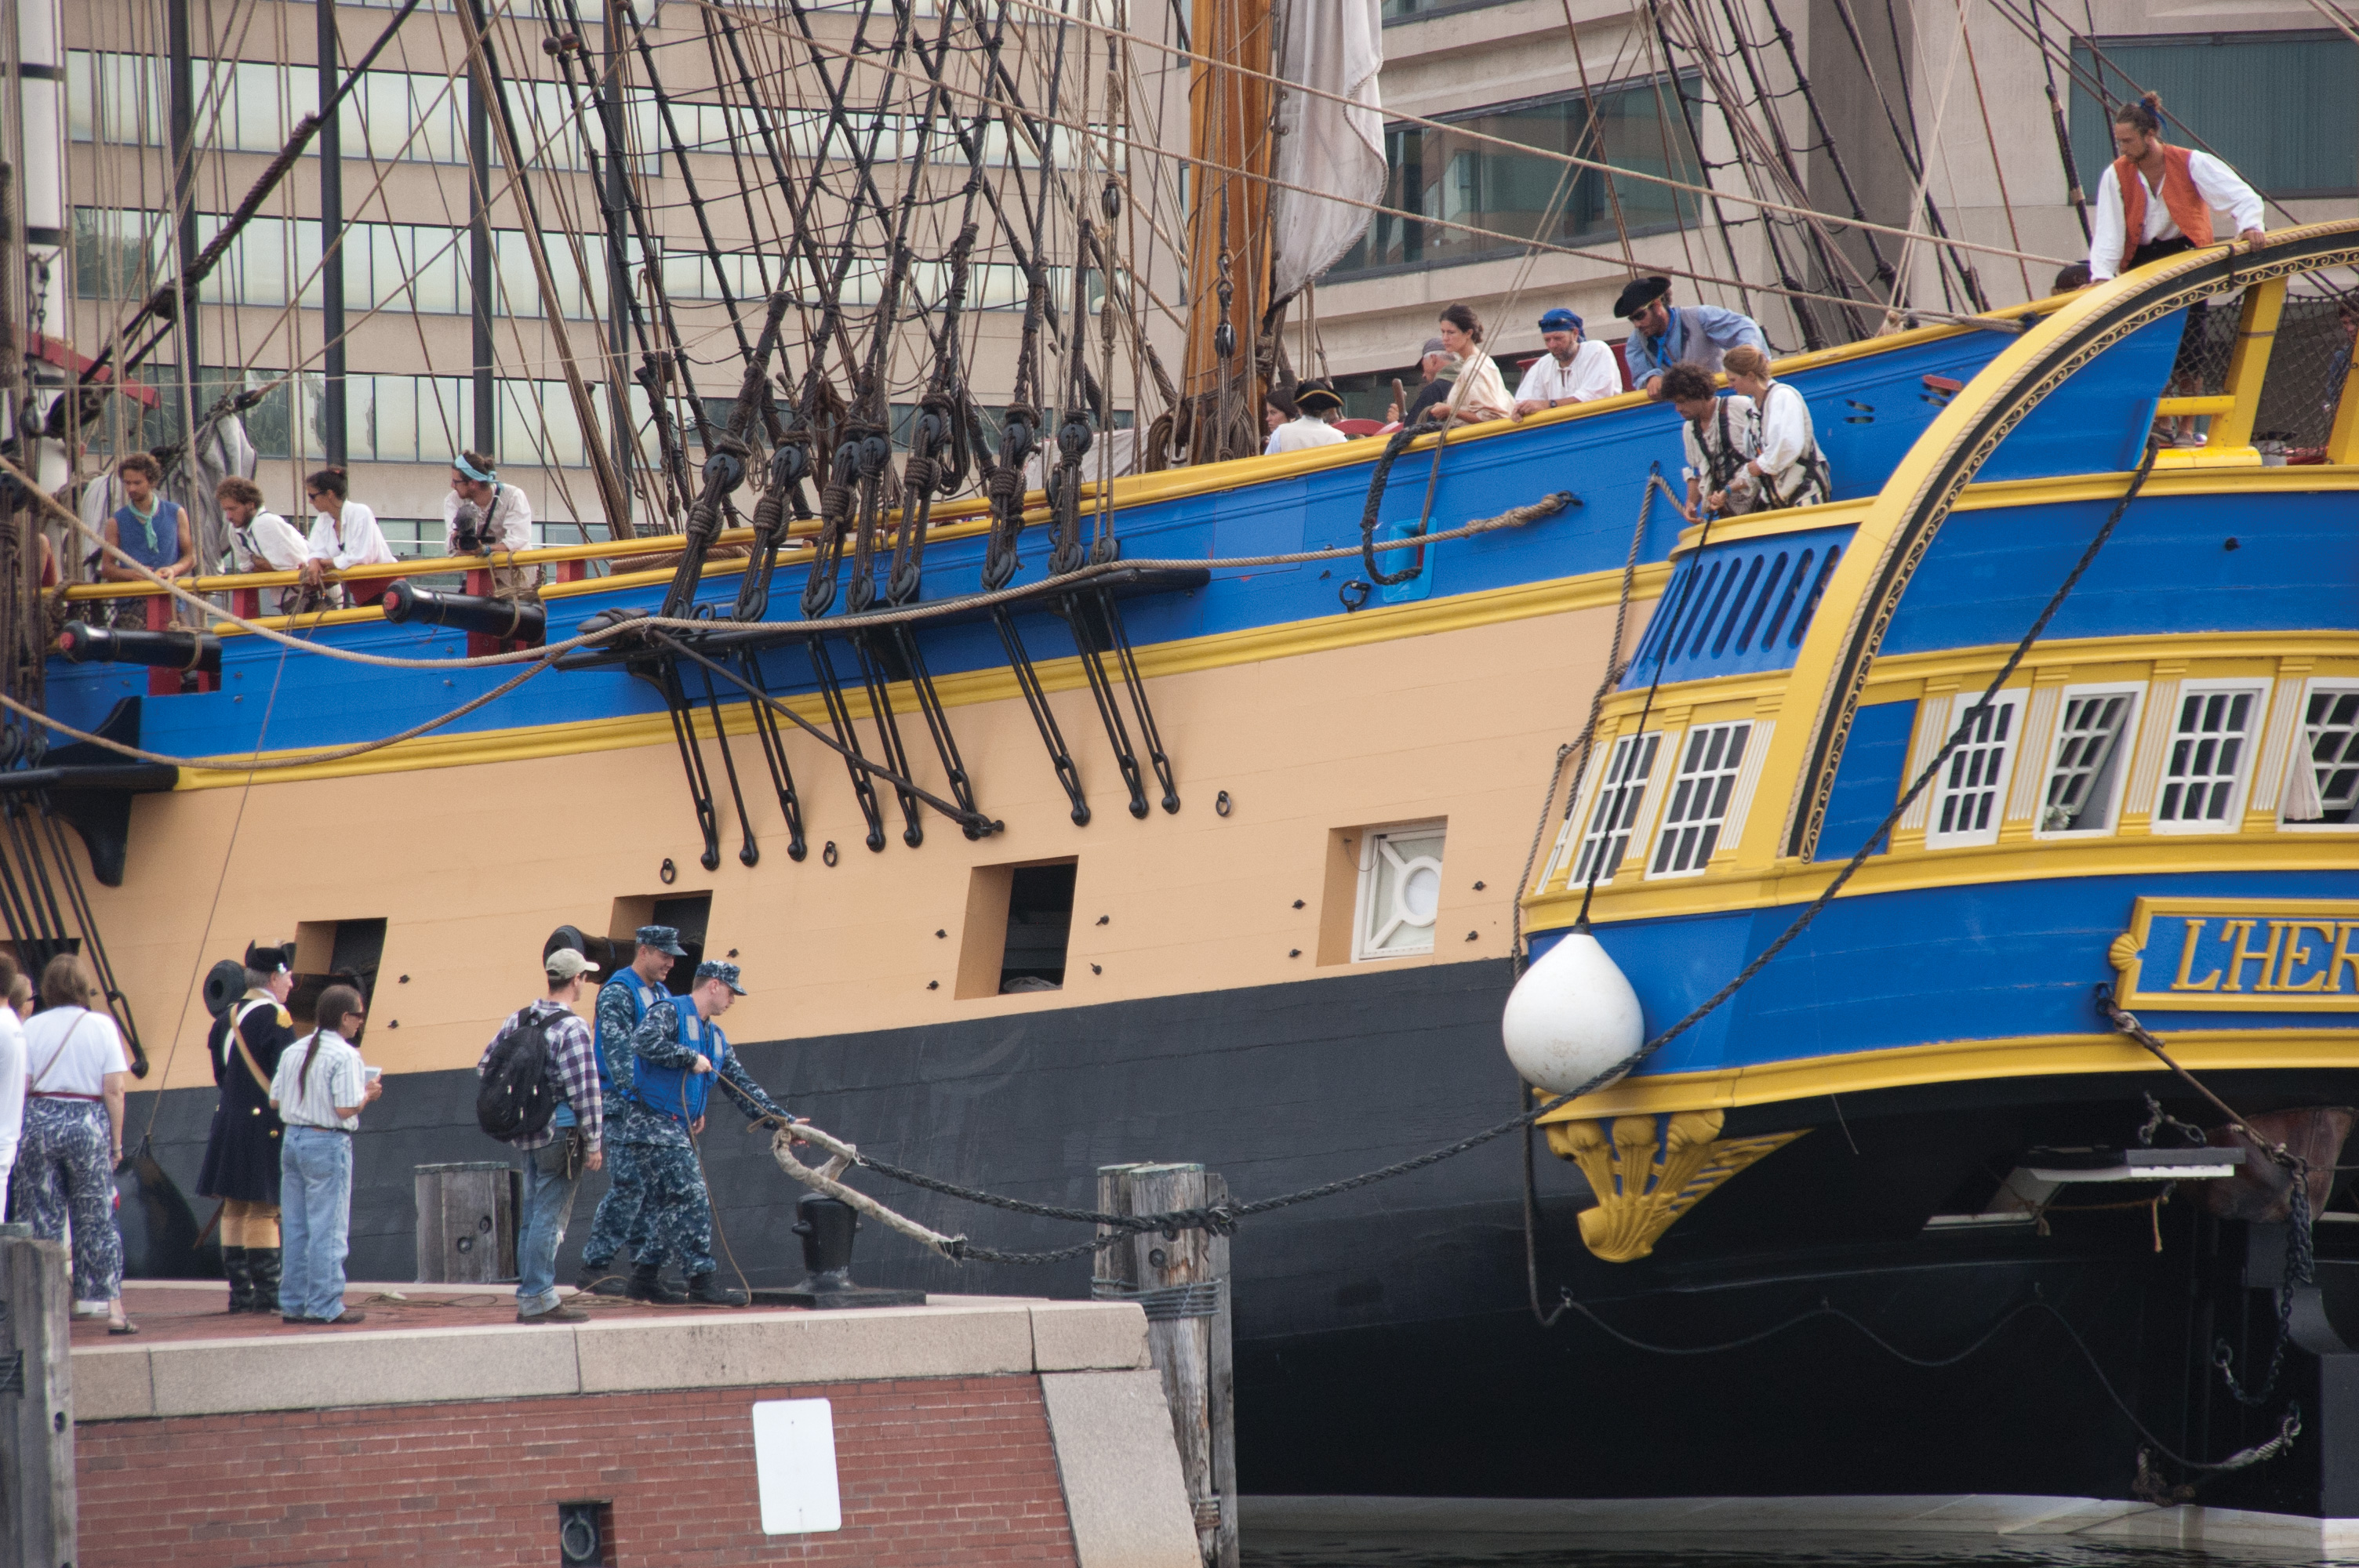 Navy sailors help secure the replica Hermione in its pier in Baltimore's Inner Harbor. USNI News photo.